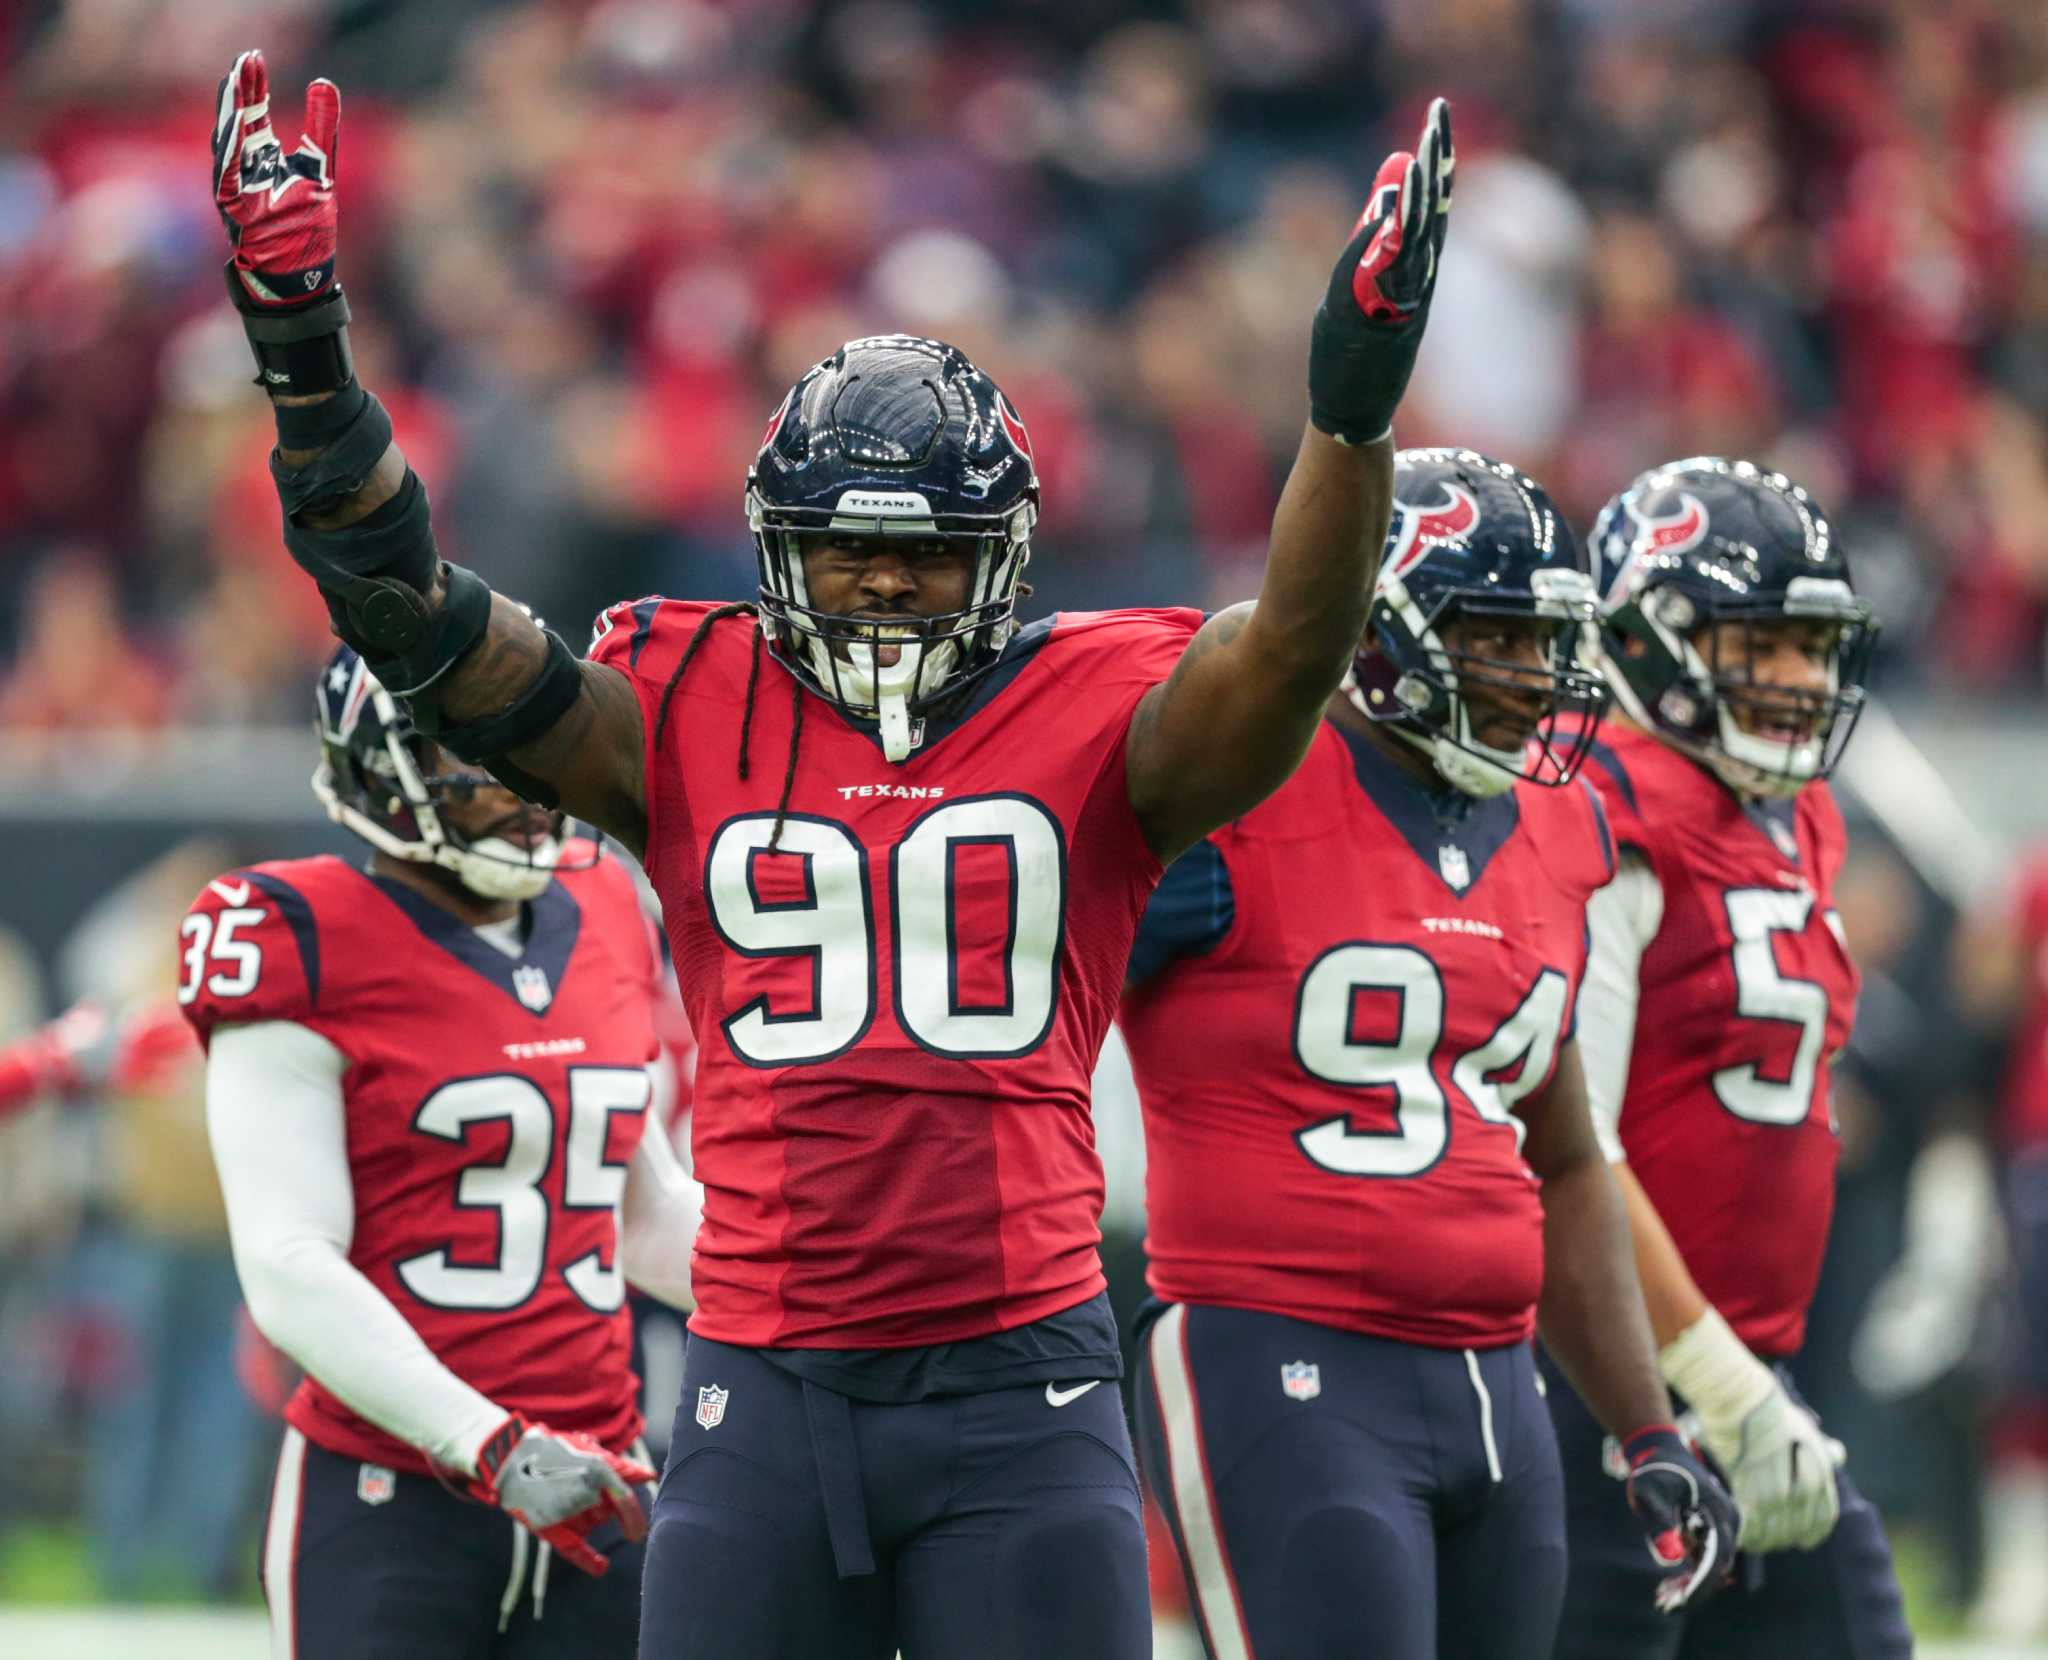 The Sports Update The emergence of Texans Jadeveon Clowney